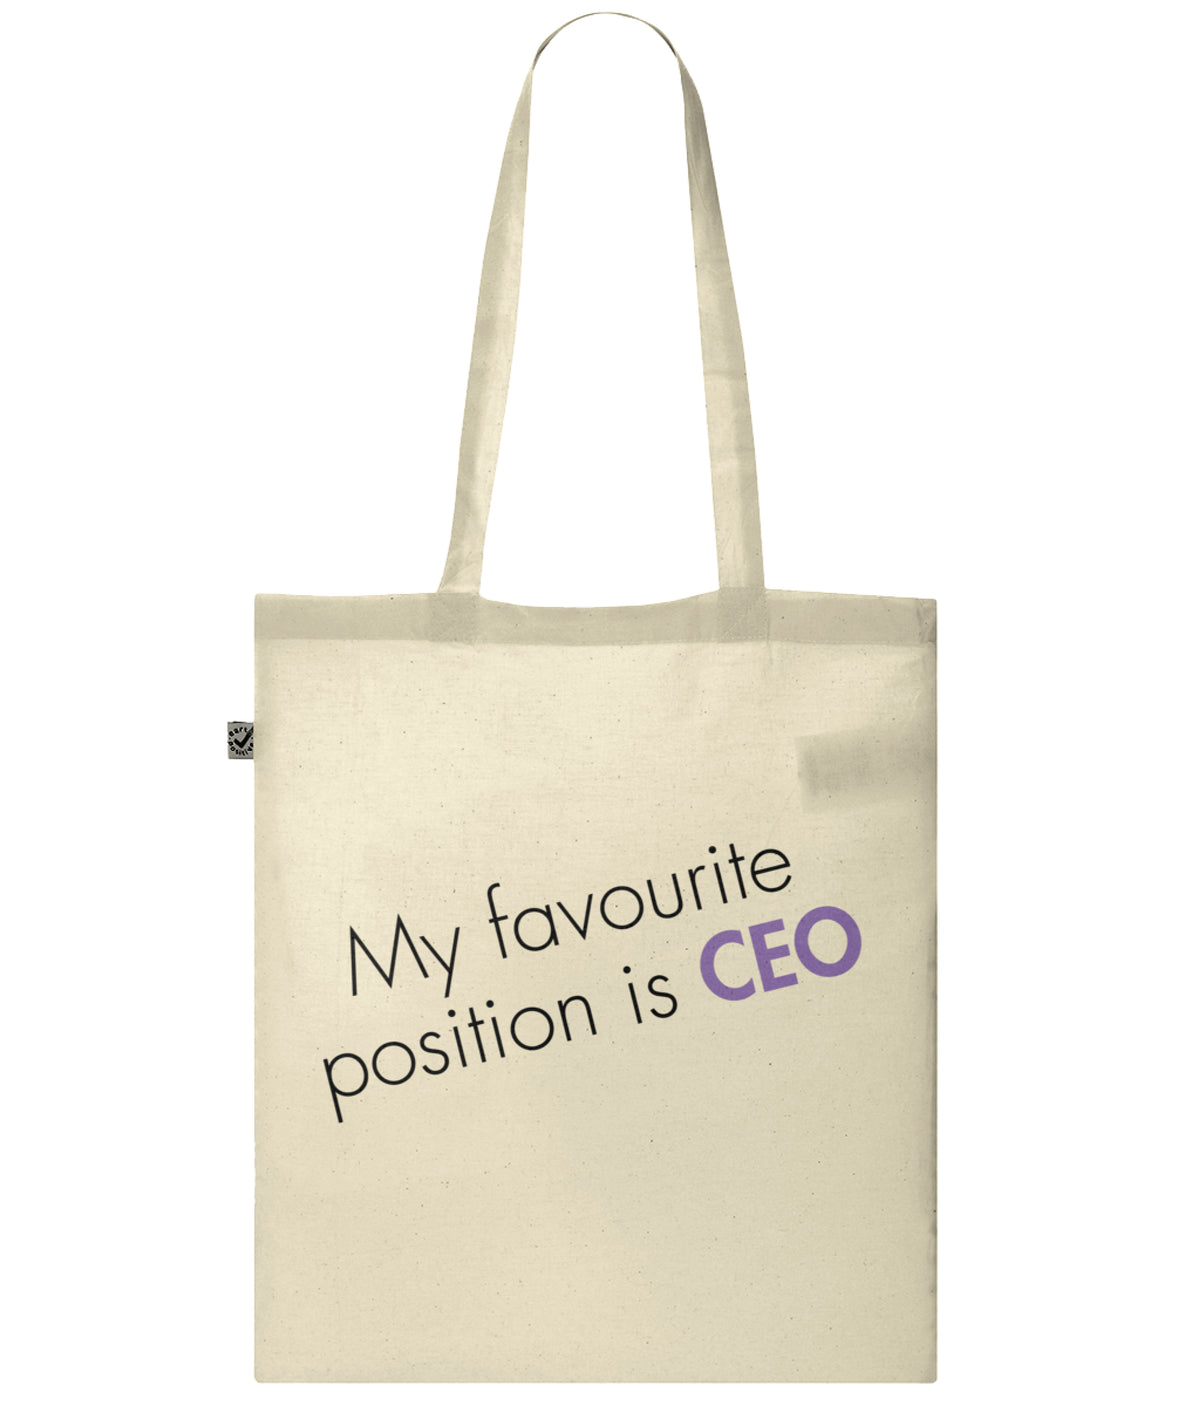 My Favourite Position Is CEO Organic Combed Cotton Tote Bag Natural